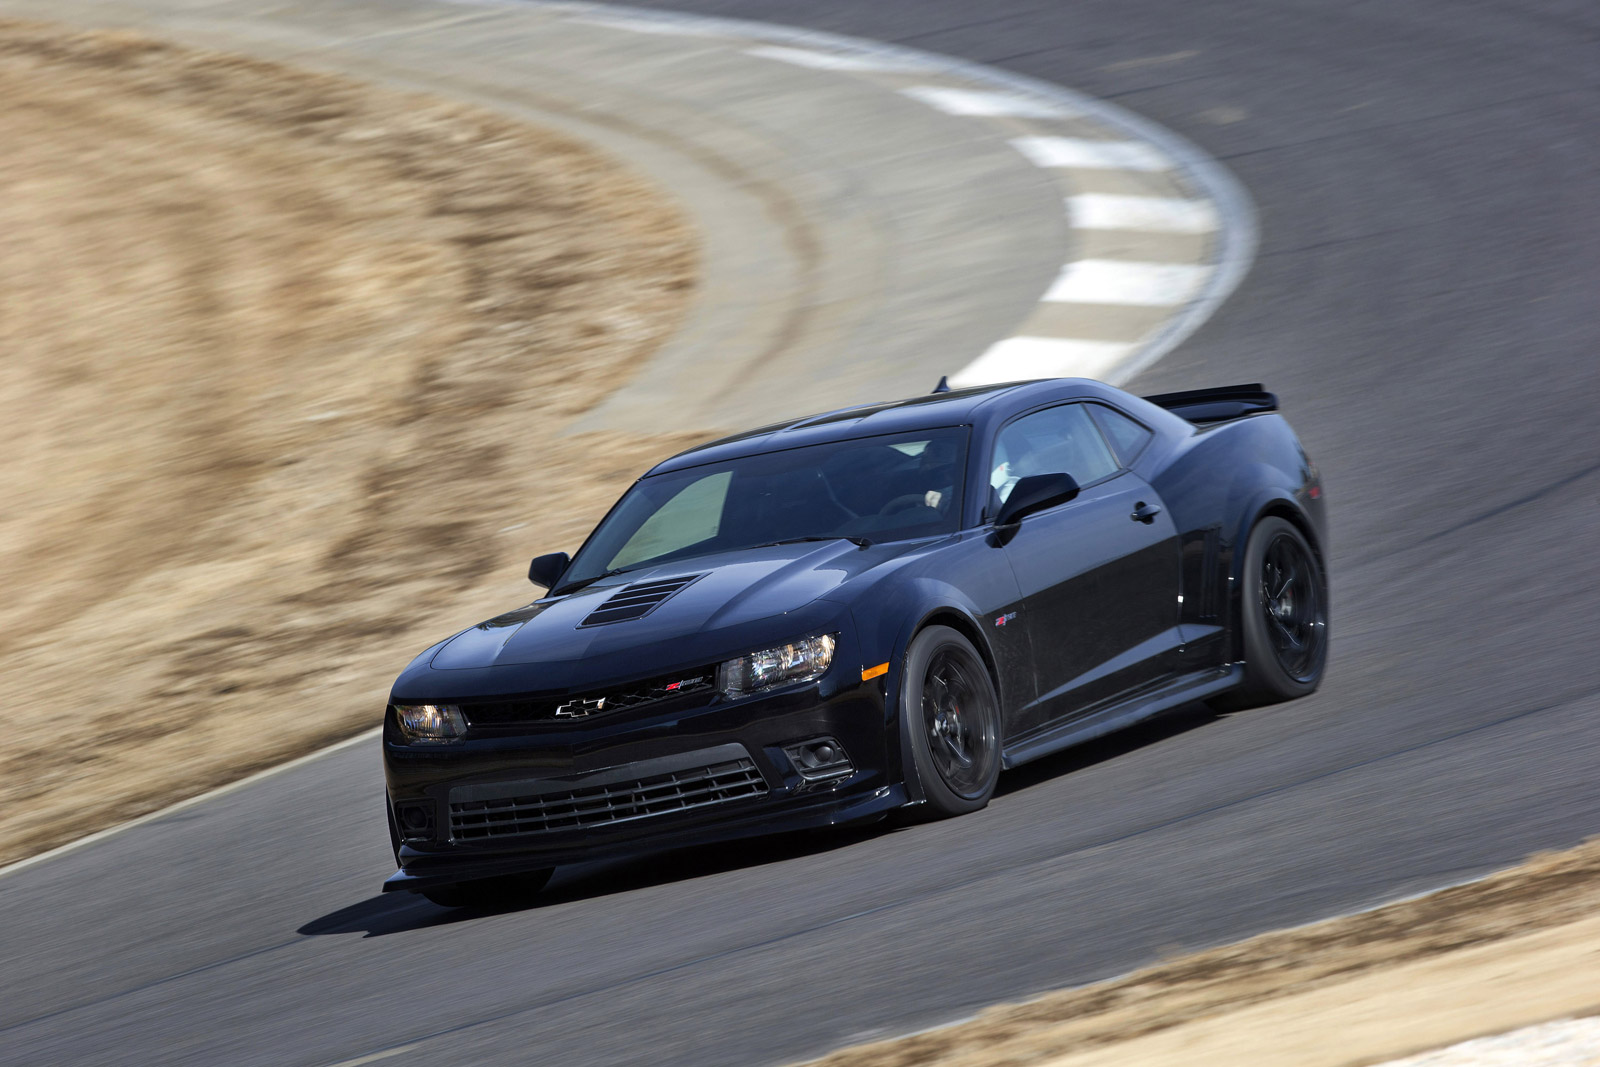 2014 Chevrolet Camaro Chevy Review Ratings Specs